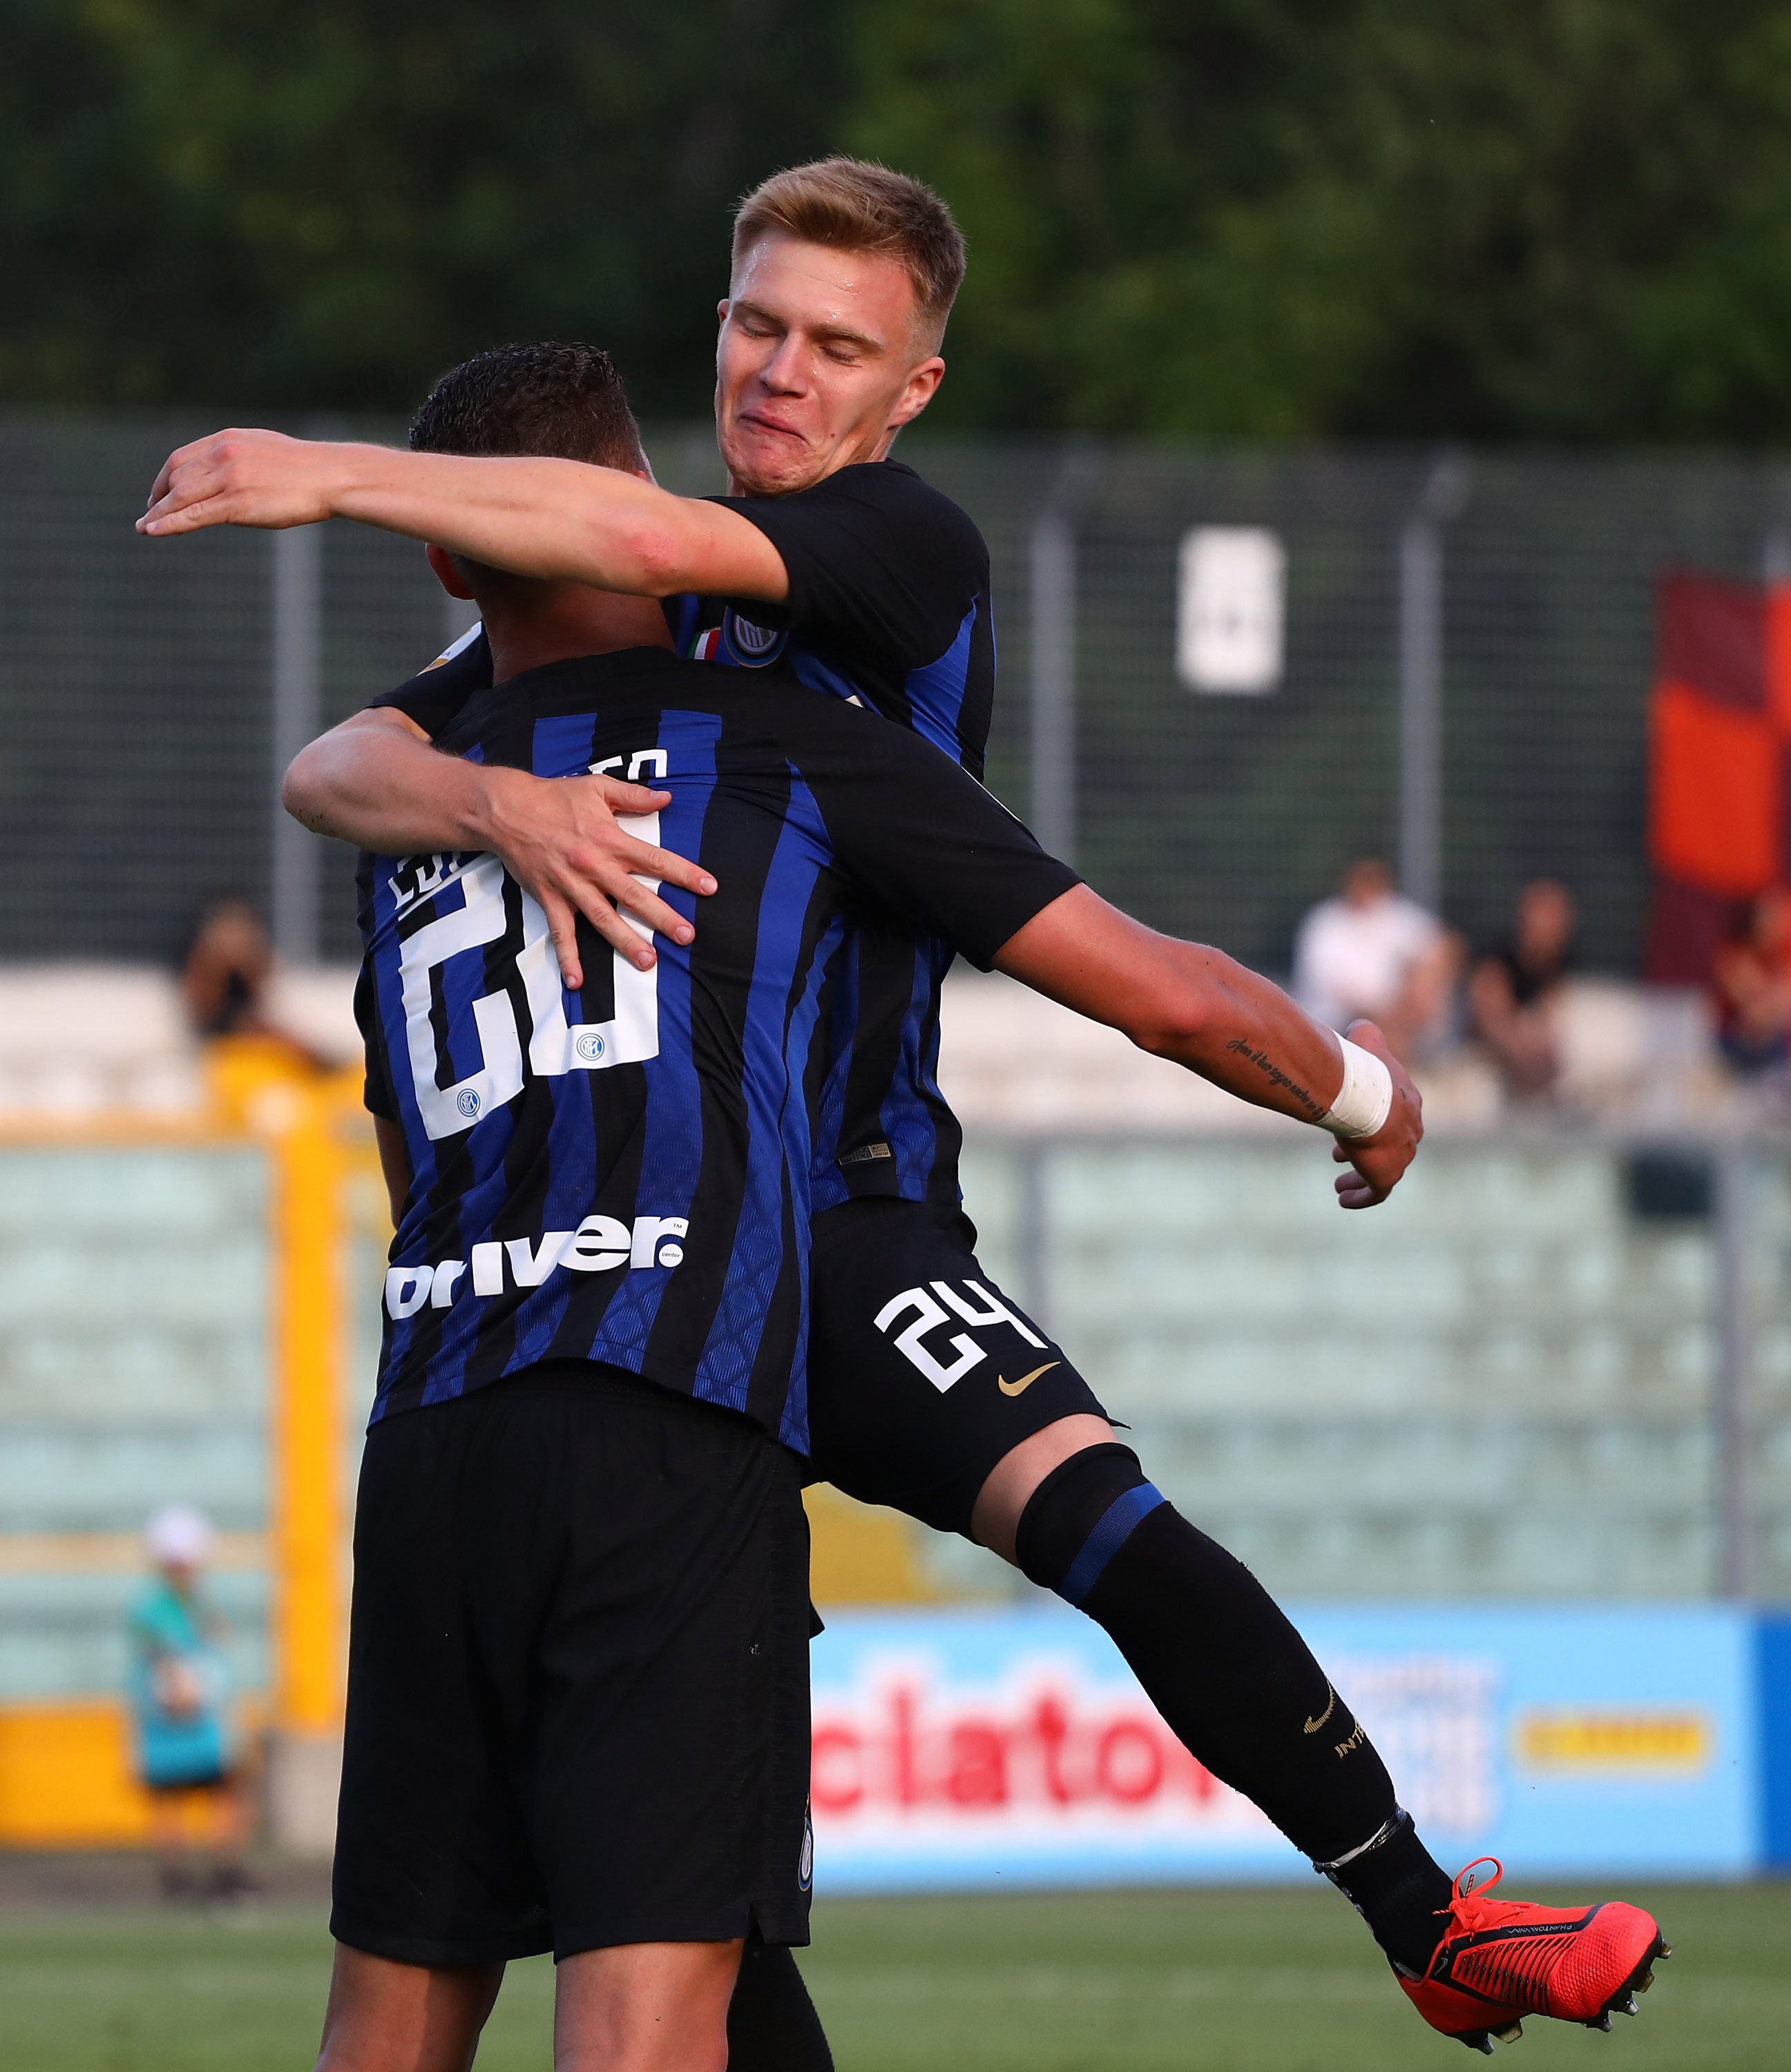 GALLERY | Colidio and Esposito help Inter reach 3rd consecutive Primavera final